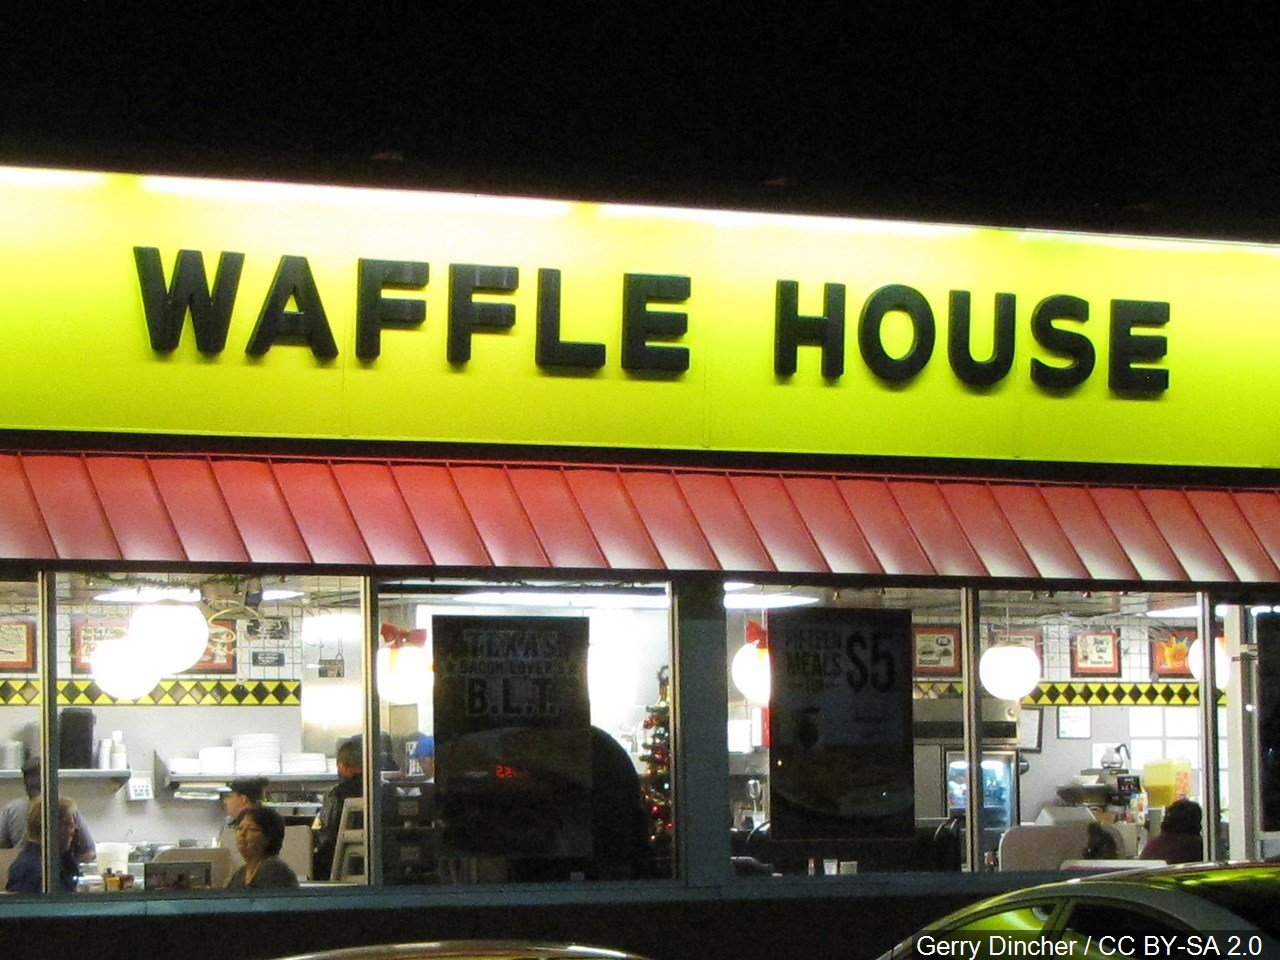 SC man cooks own meal at Waffle House while employee sleeps